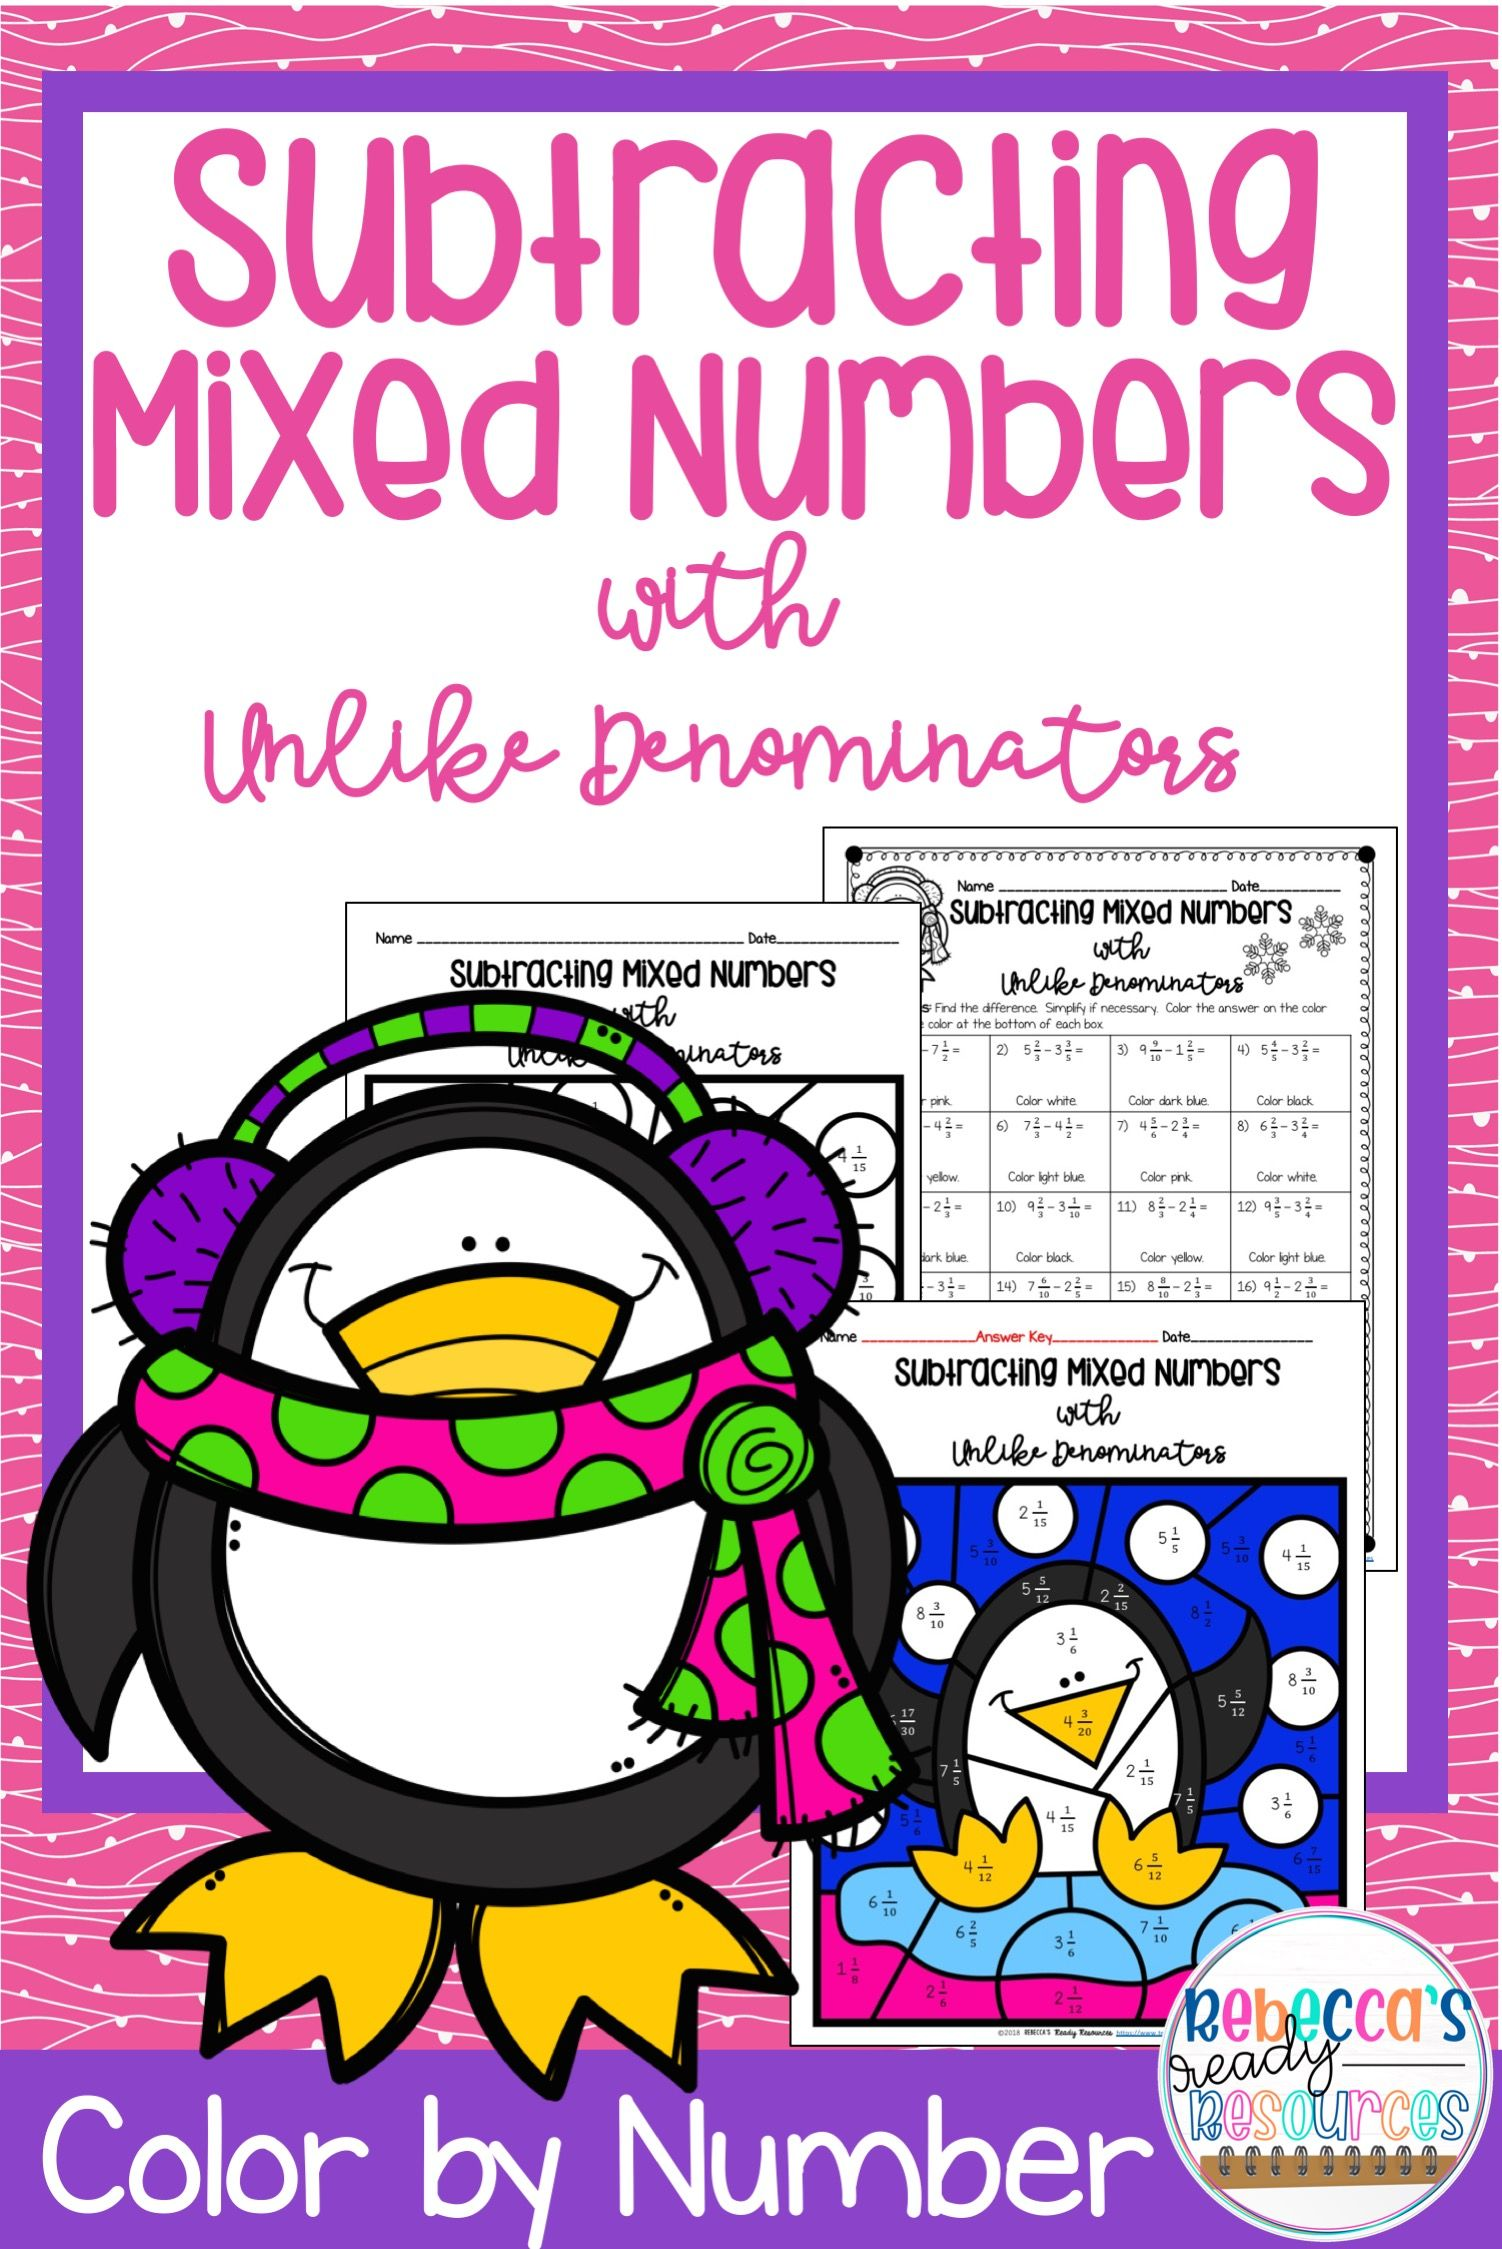 Subtracting Mixed Numbers With Unlike Denominators Color